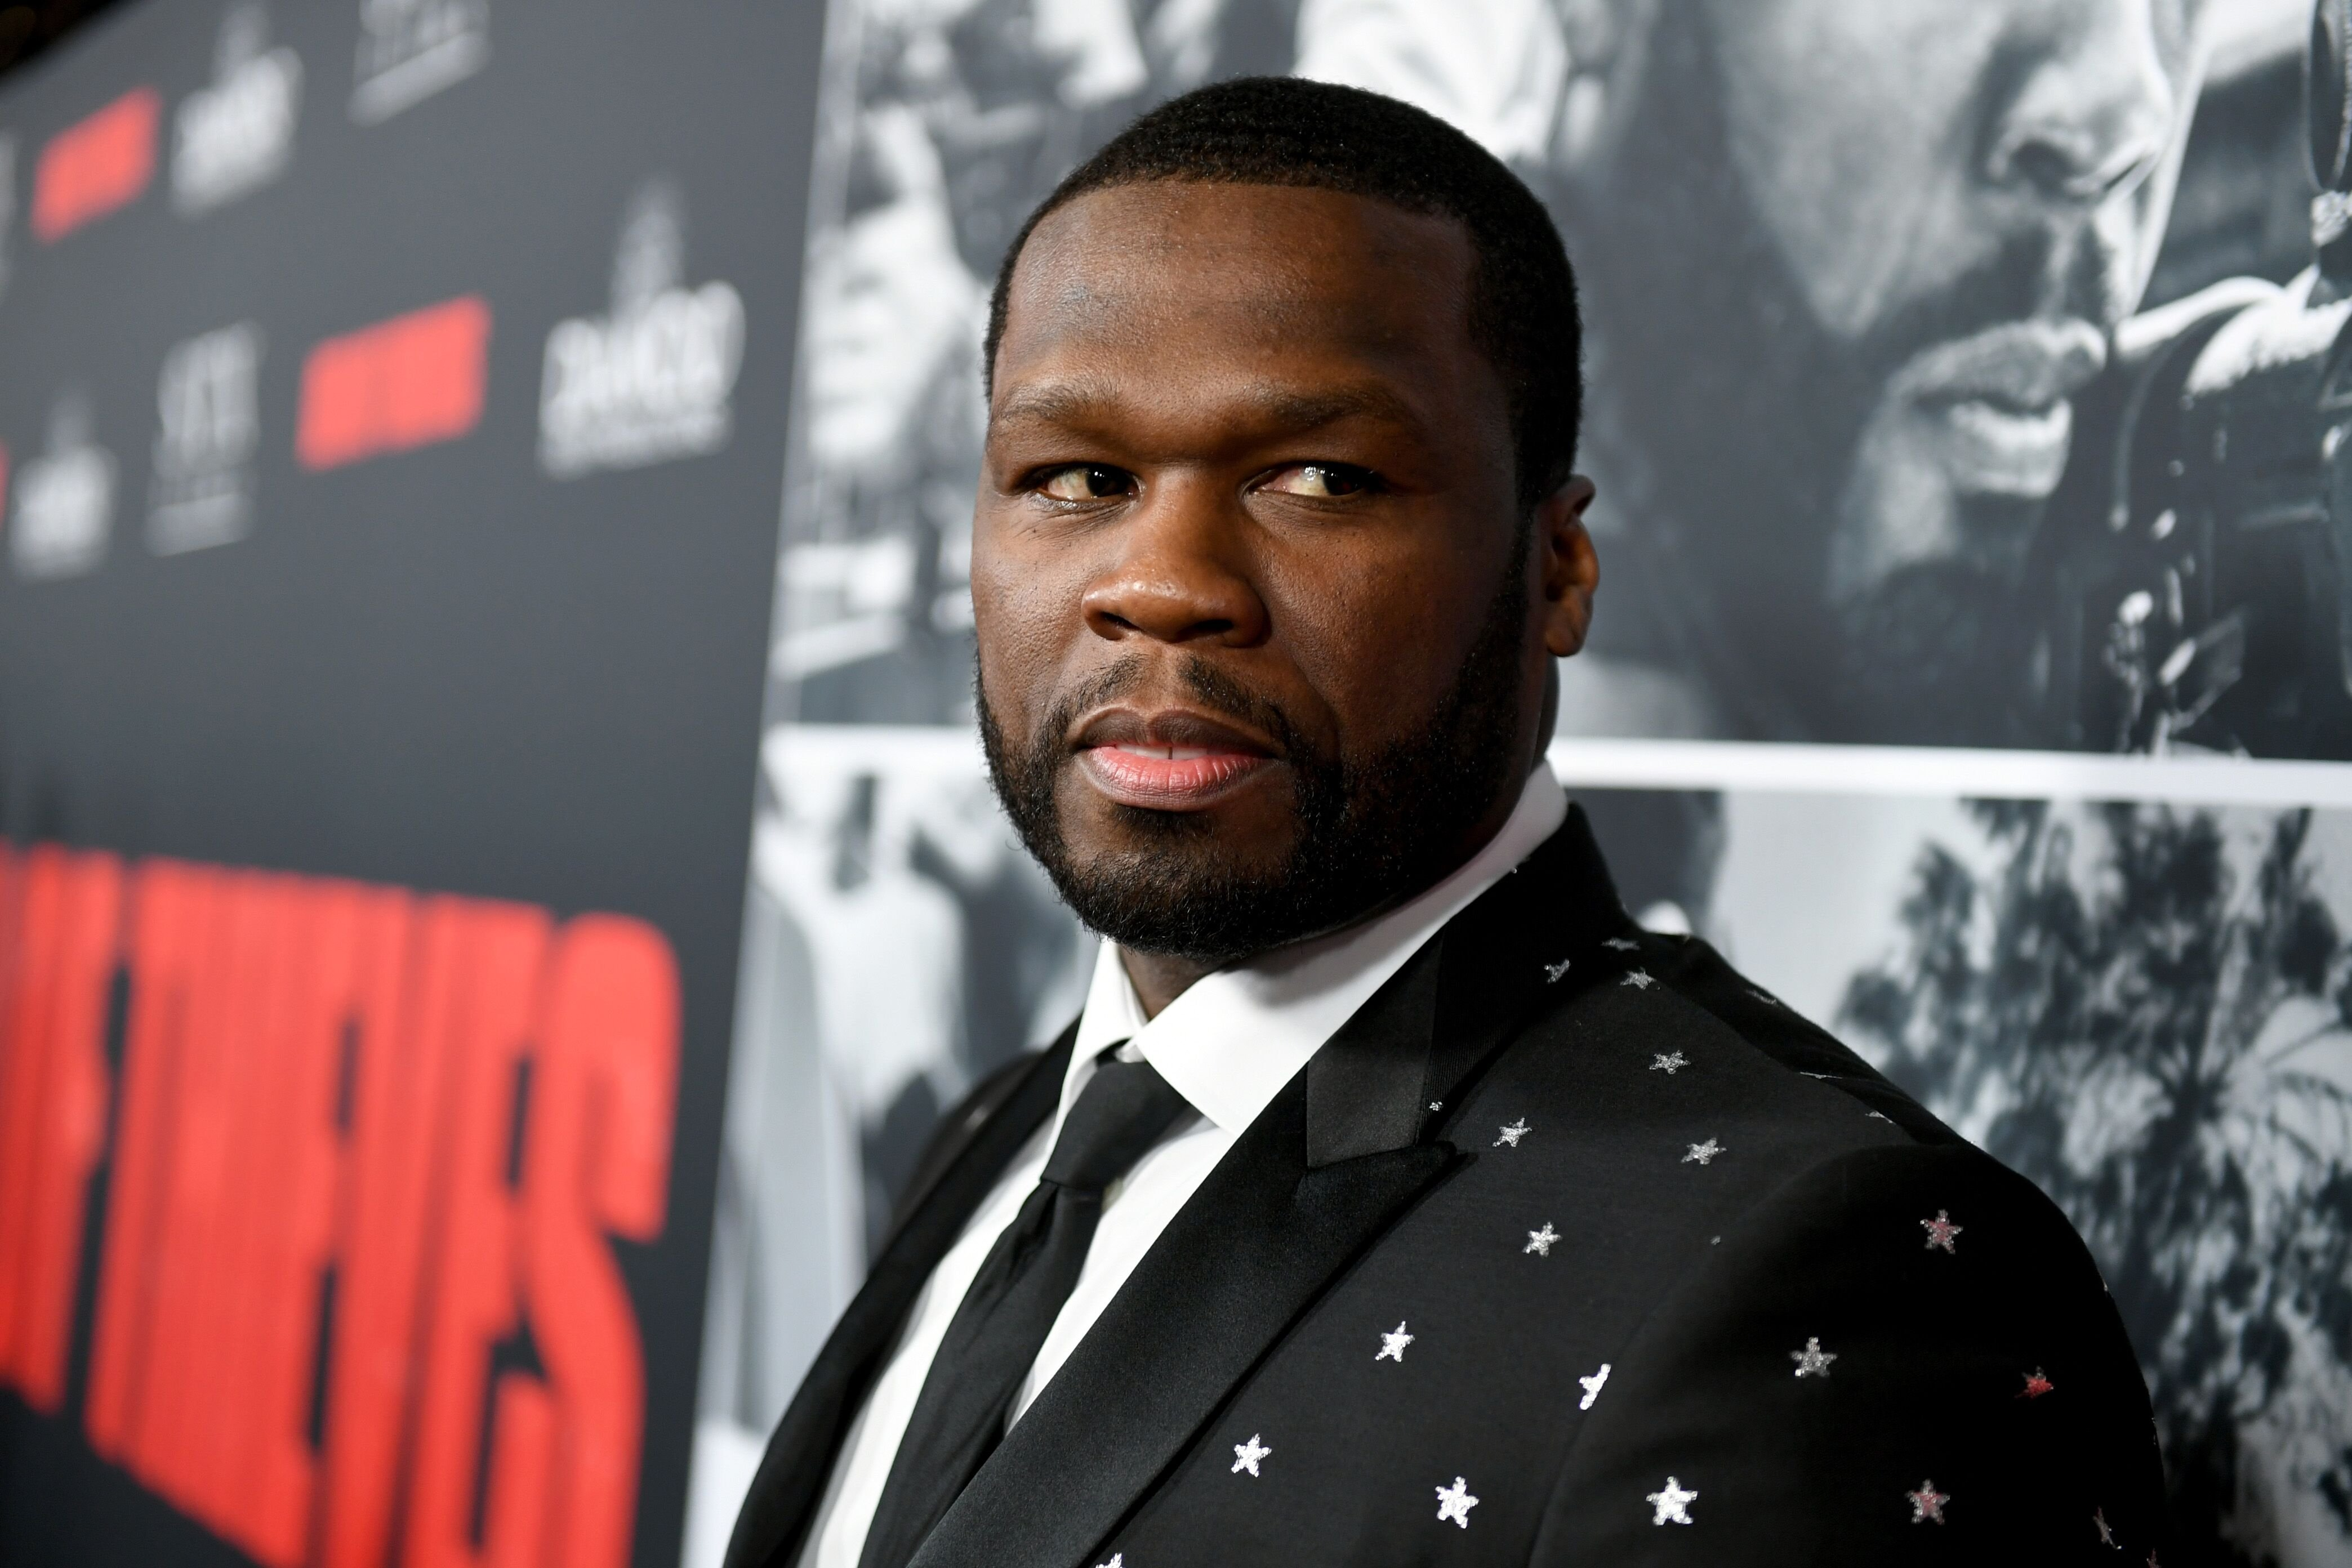 """50 Cent attends the 2018 premiere of """"Den of Thieves"""" in Los Angeles, California 